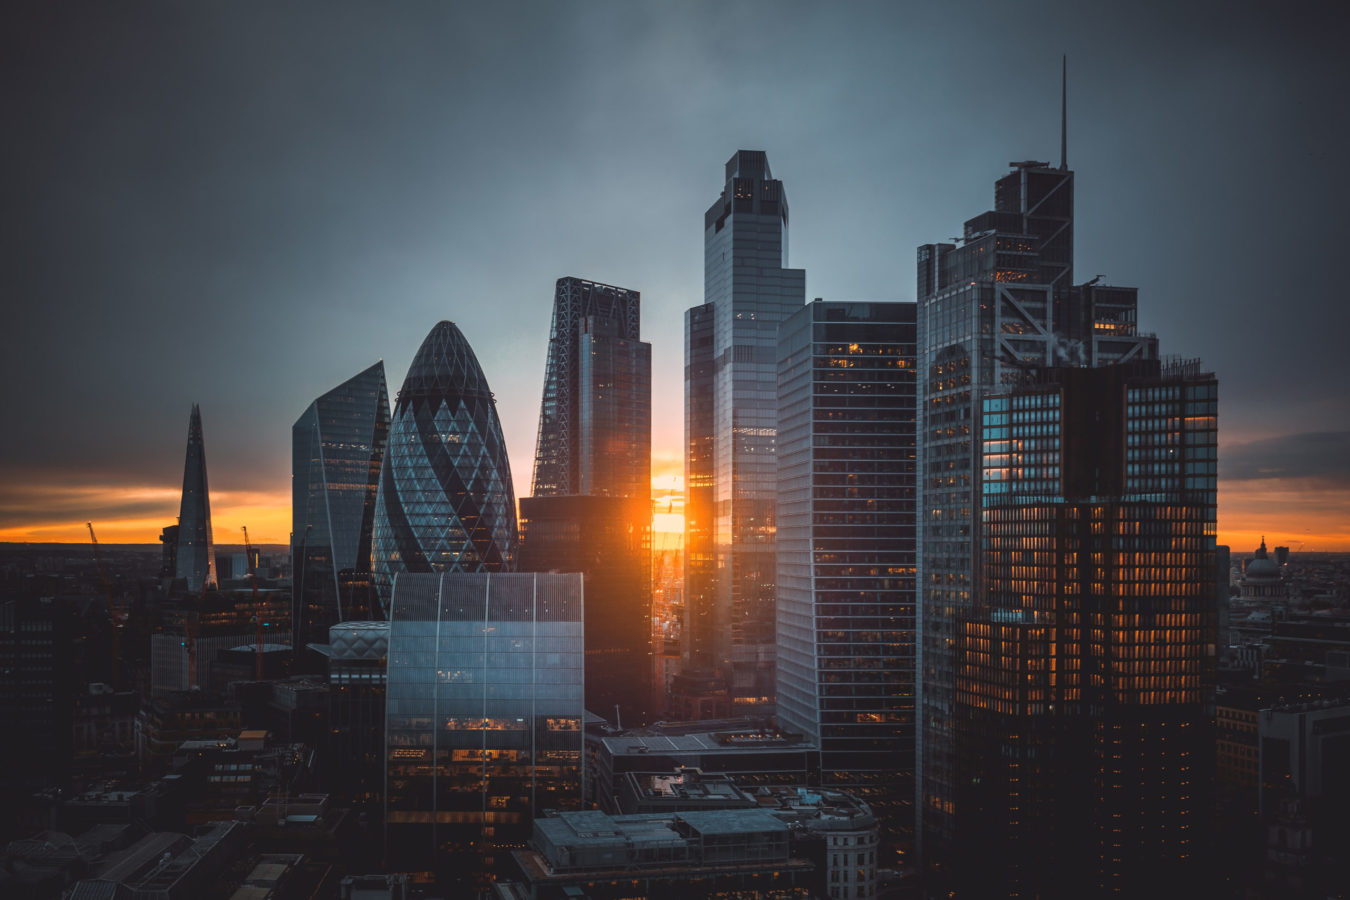 London Tops the List of Most Intelligent and Future-proof Big Cities